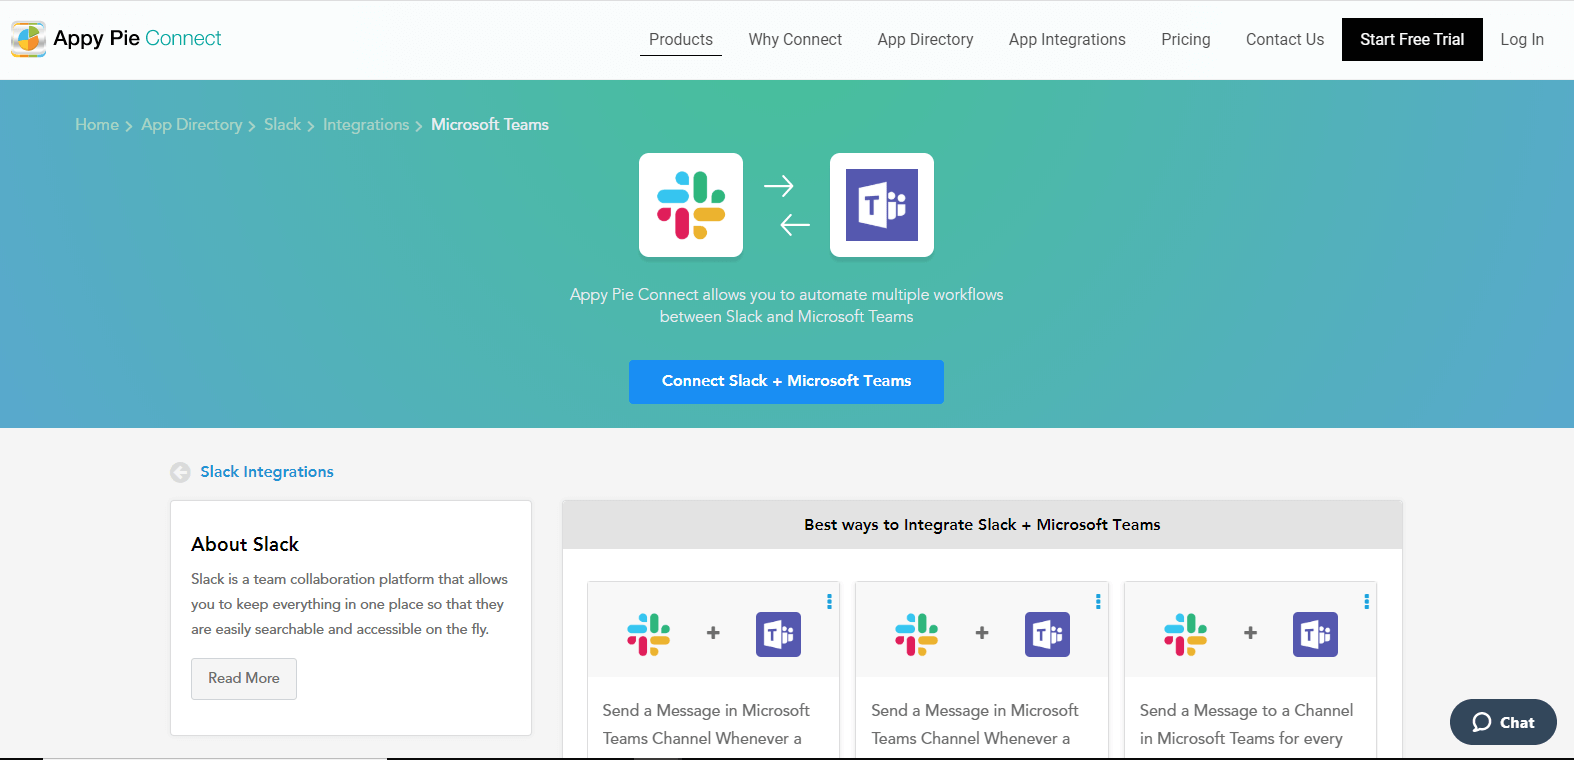 Integrate Connect slack and microsoft teams using Appy Pie